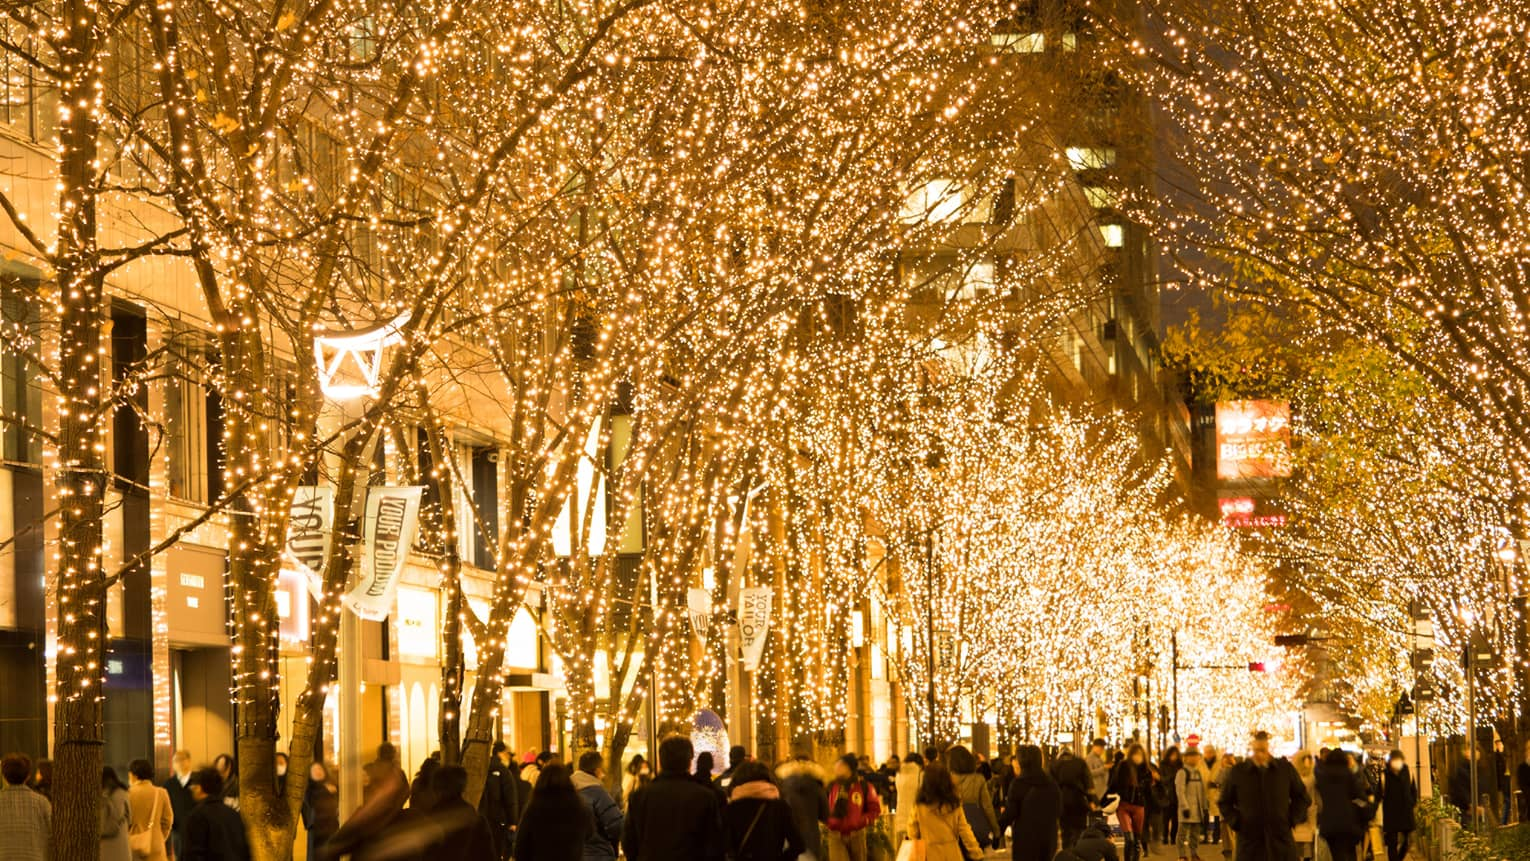 Trees on a street in Kyoto lit by fairy lights as people walk by